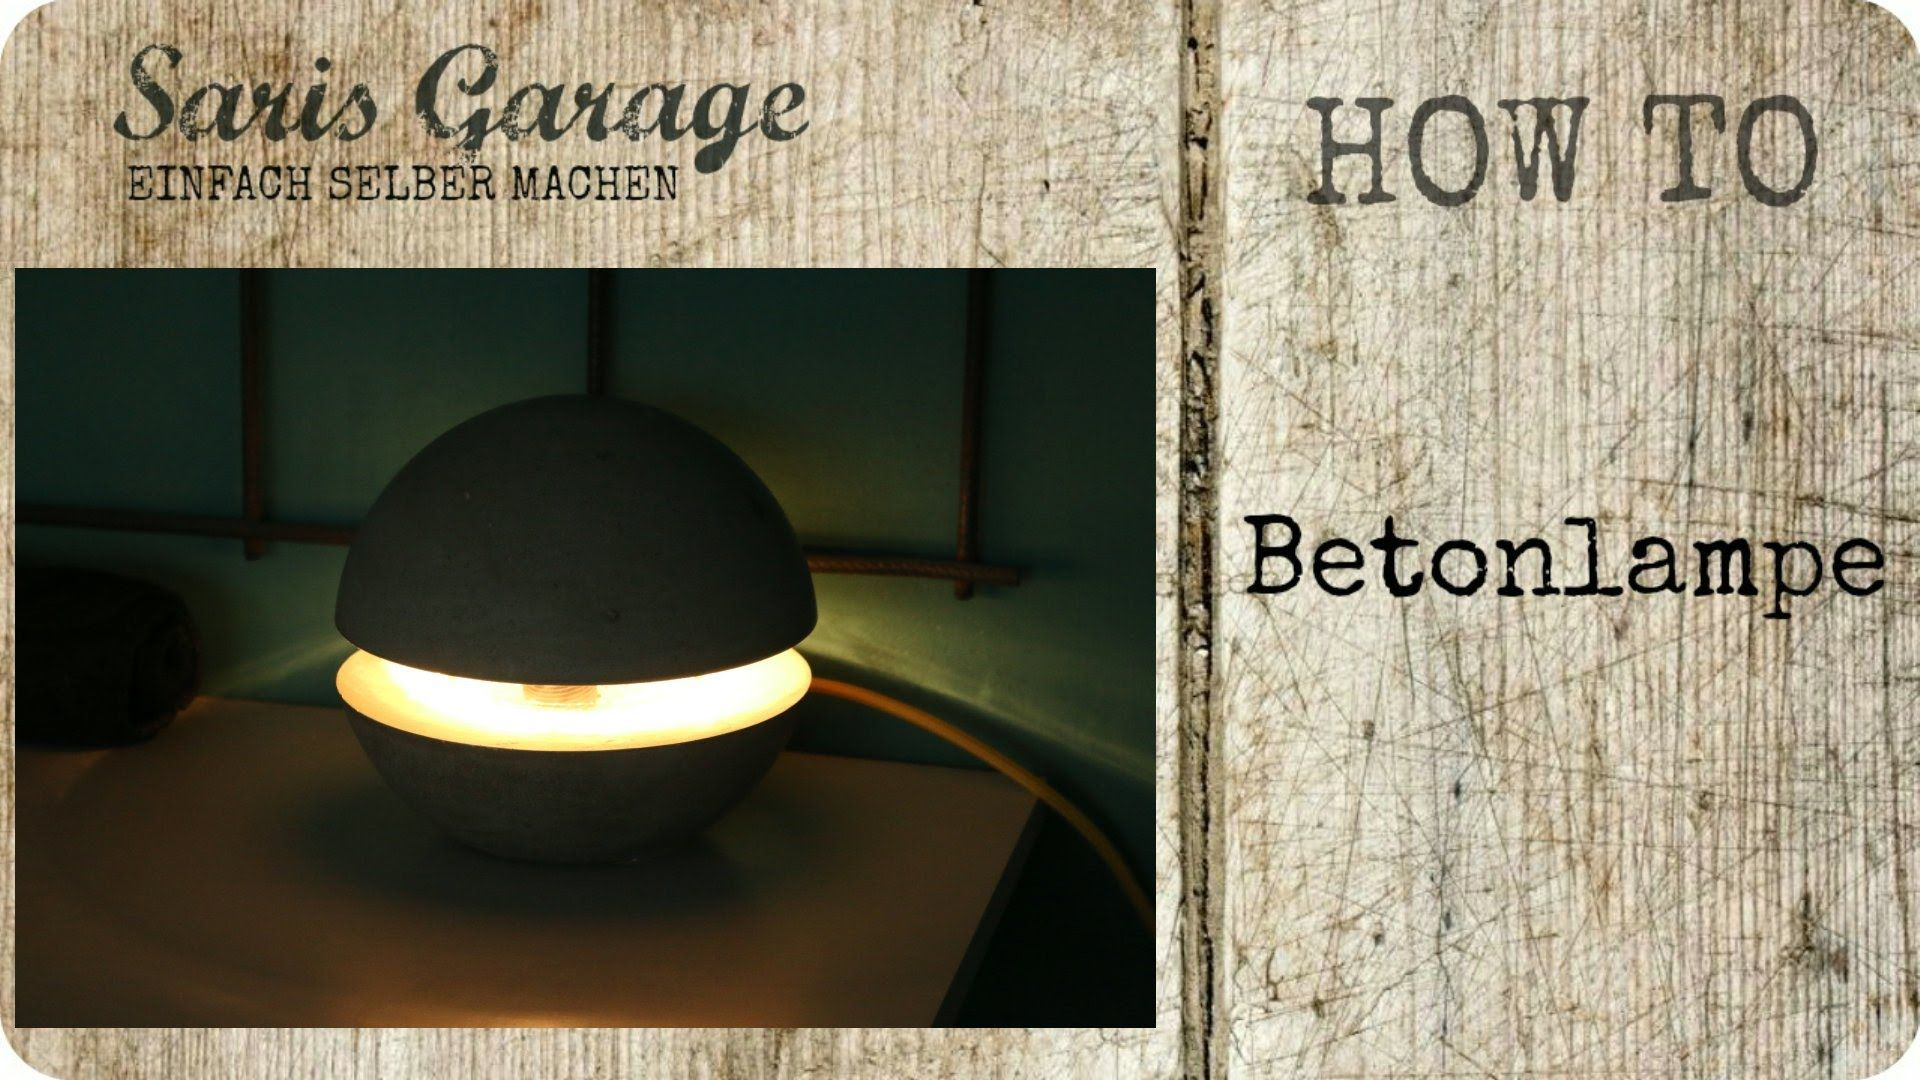 betonlampe concrete lampe aus beton diy kreativ beton lampe se tr dg rd. Black Bedroom Furniture Sets. Home Design Ideas